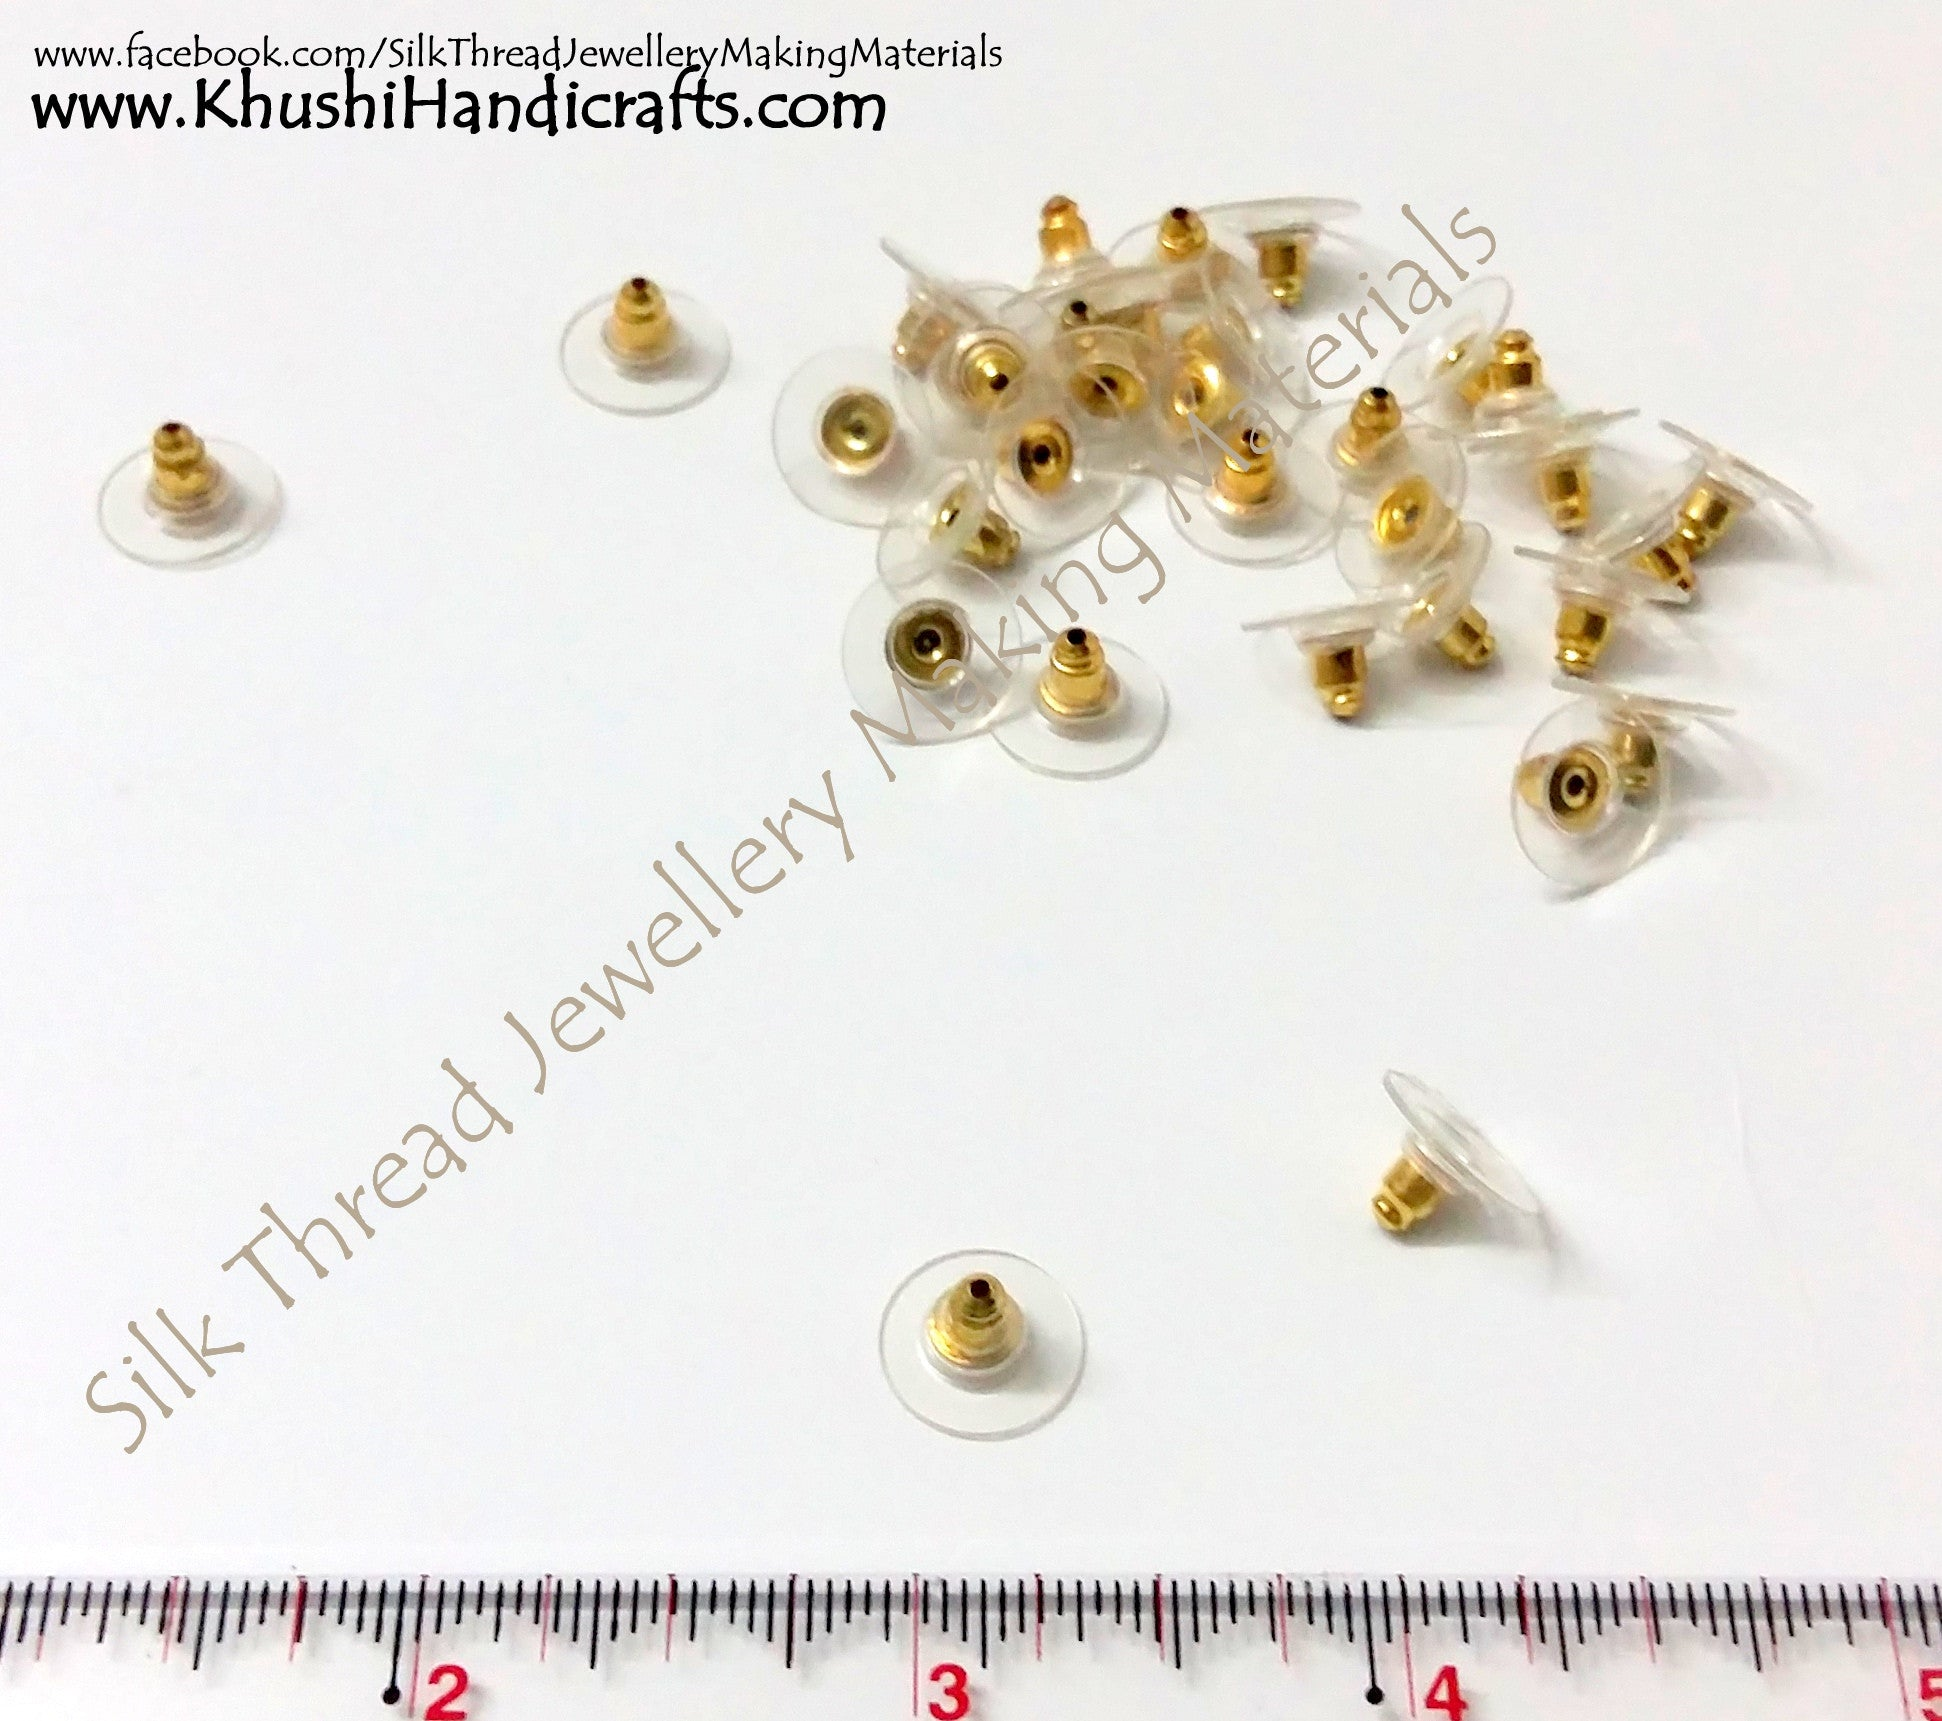 Stoppers/Stopper Pack of 100 pairs in Gold and Silver-Bulk - Khushi Handmade Jewellery